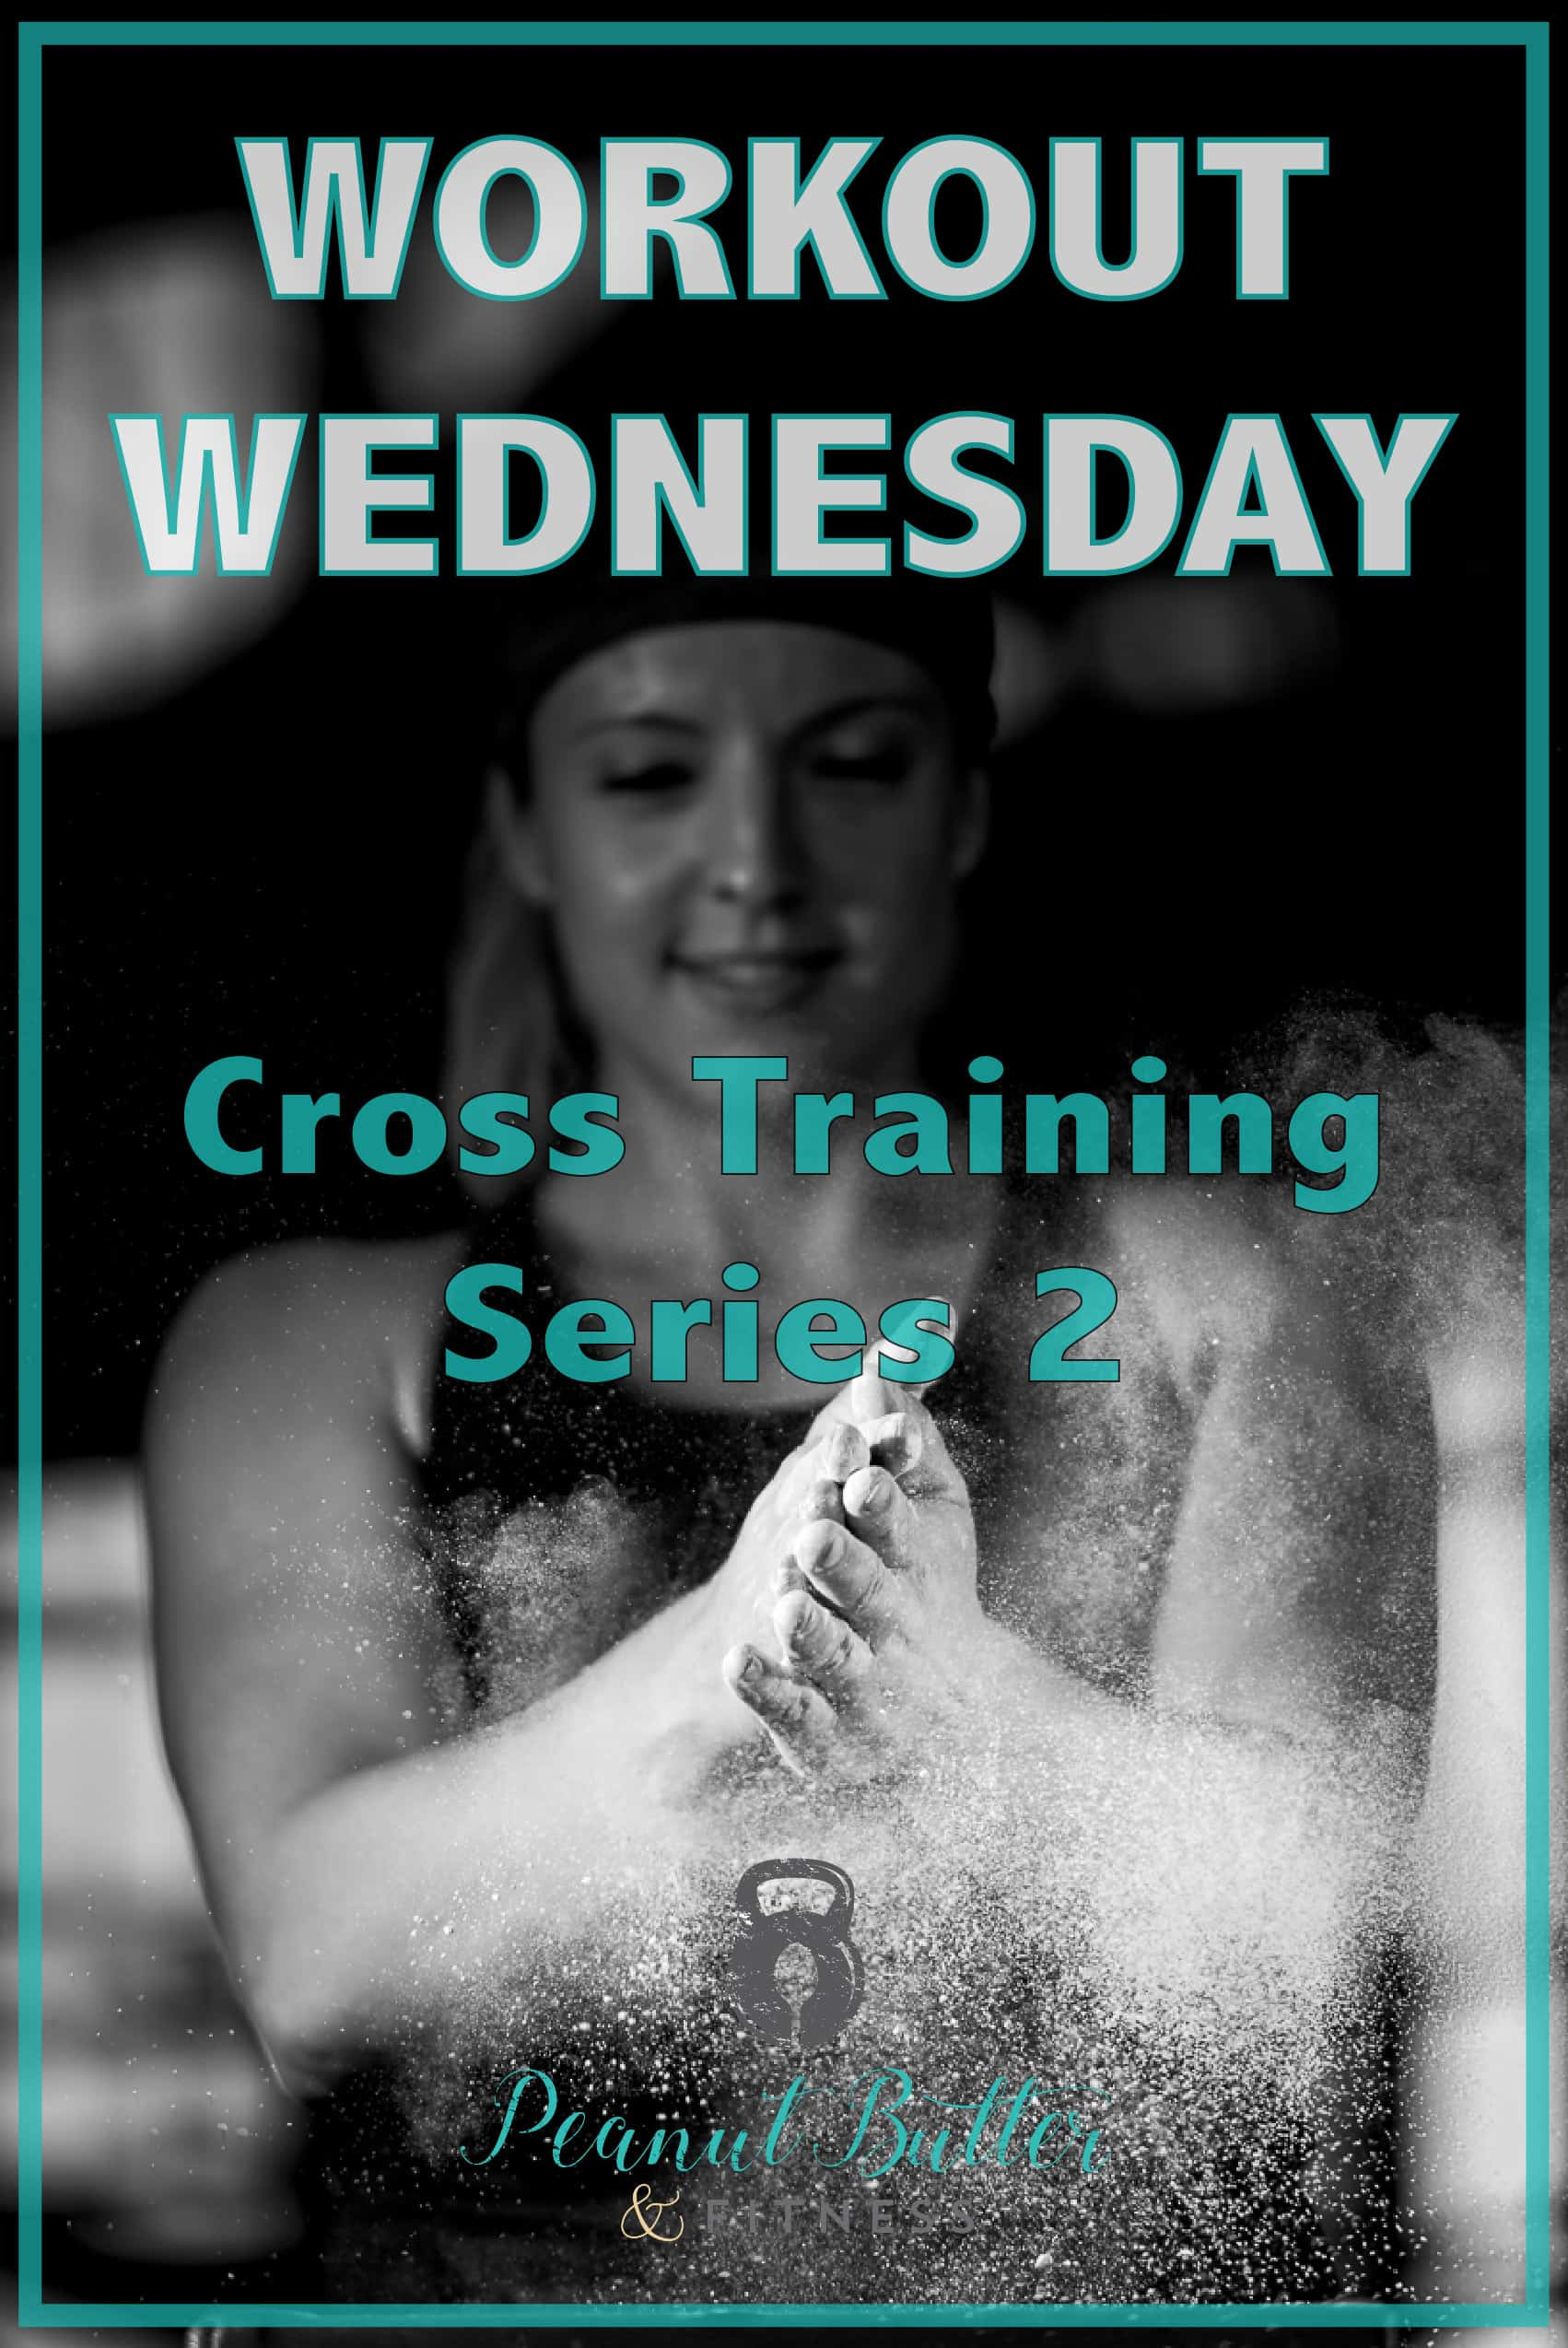 workout wednesday - cross training series 2-01